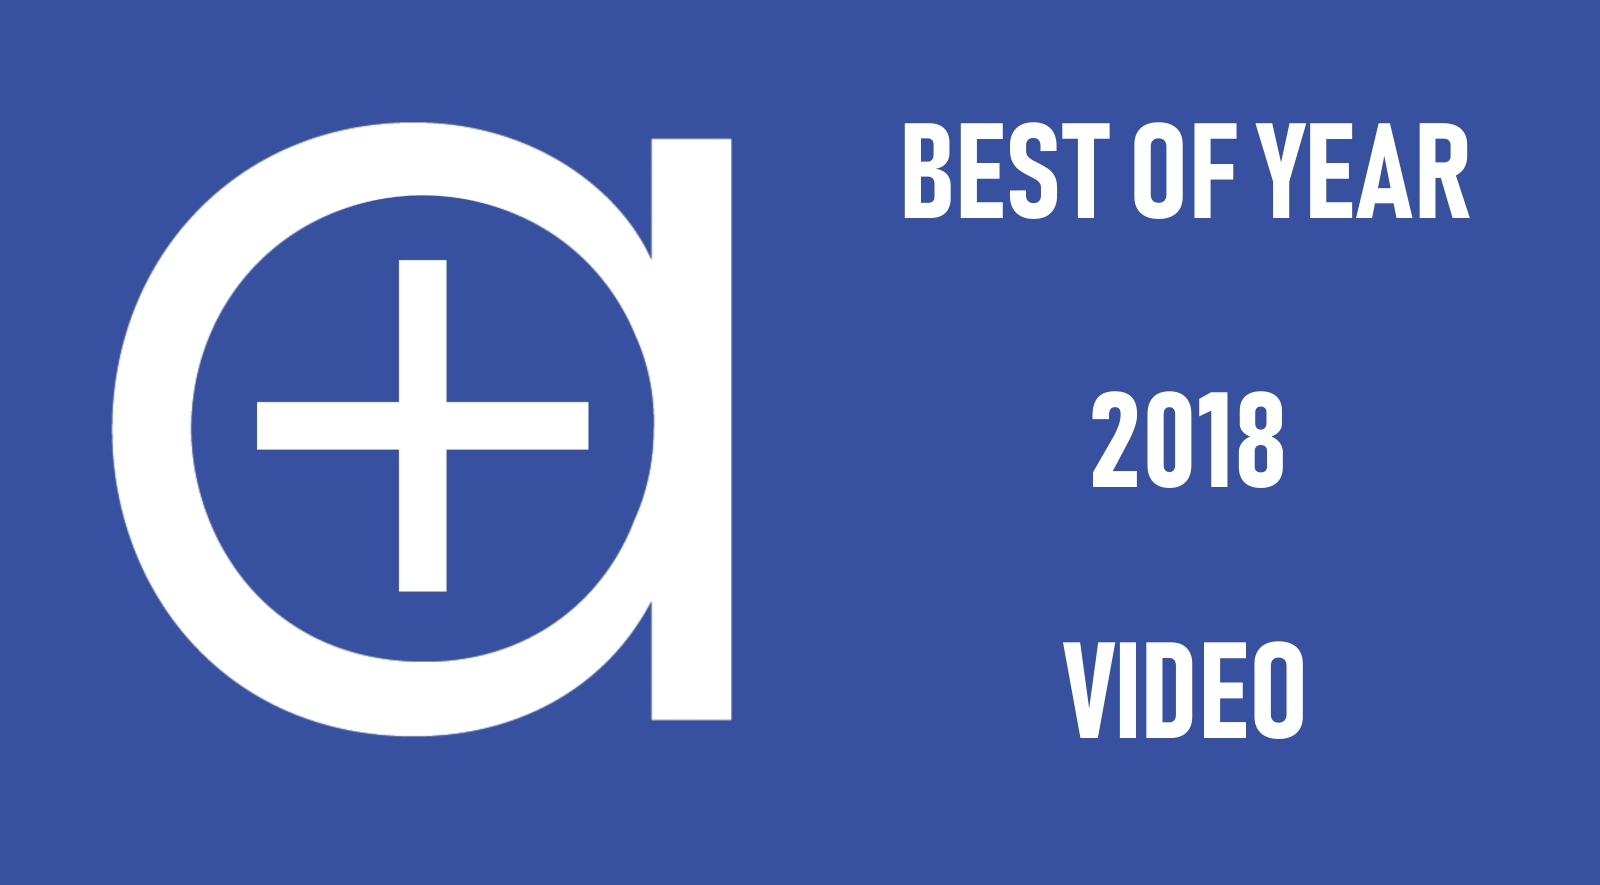 2018 Best of Year Video